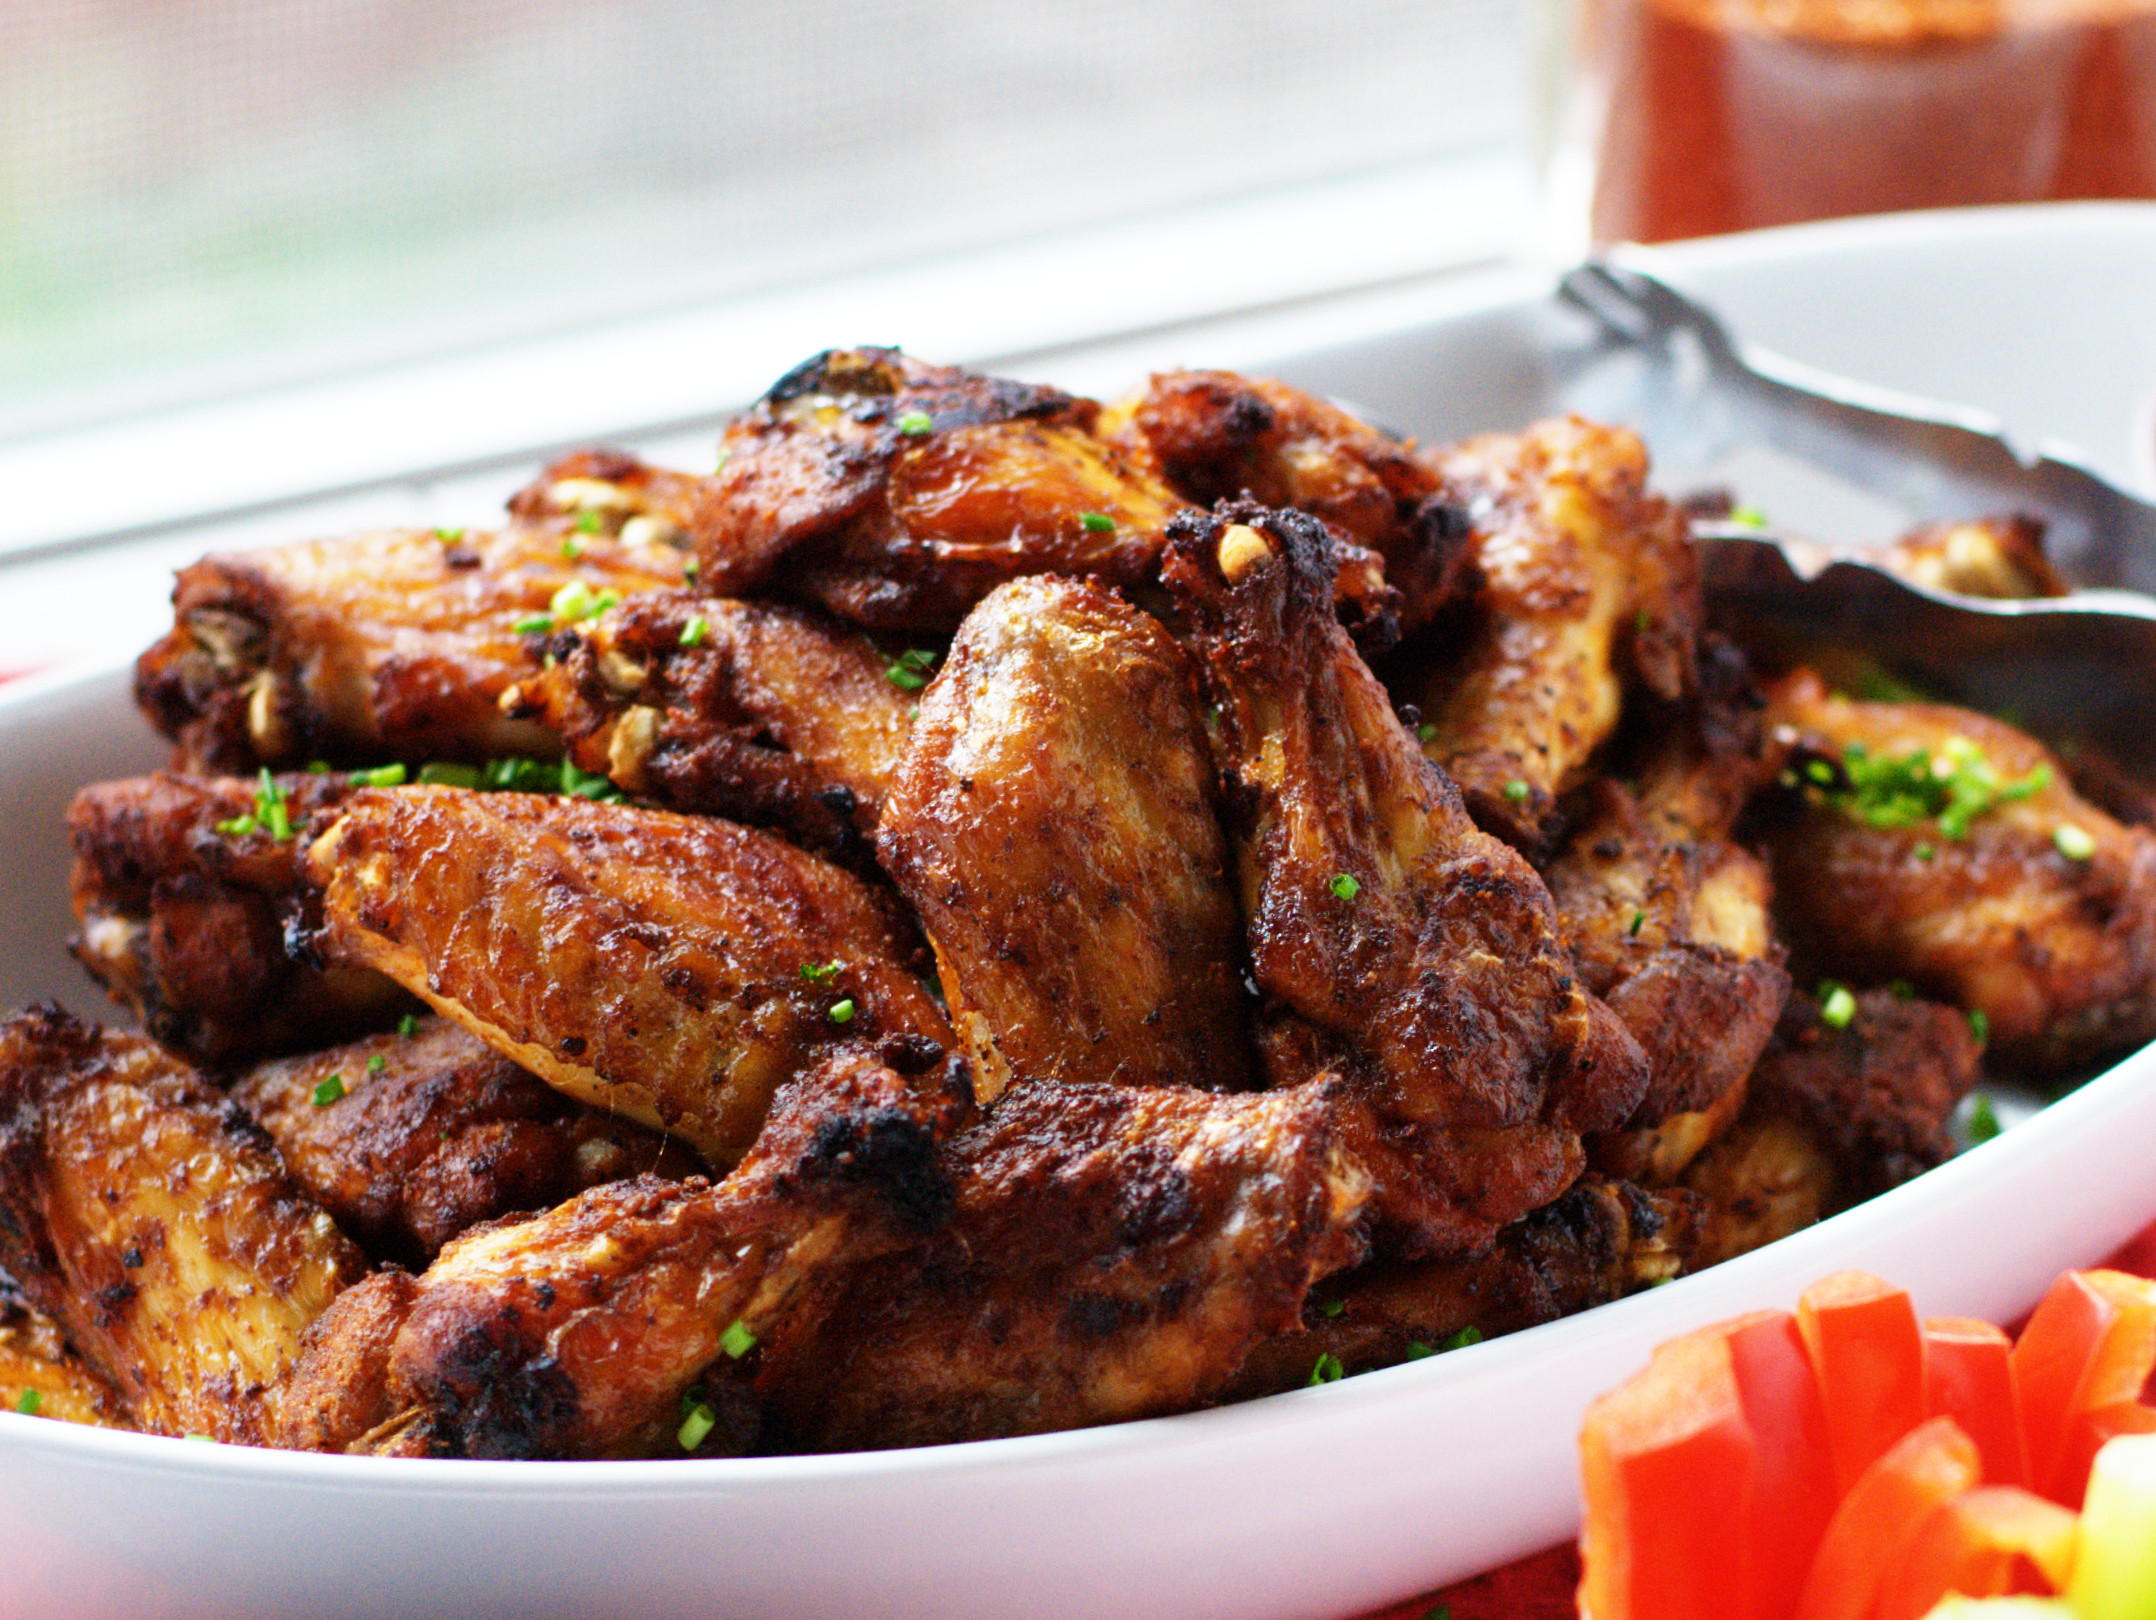 Bake Chicken Wings  Crispy Baked Chicken Wings with BBQ Dry Rub